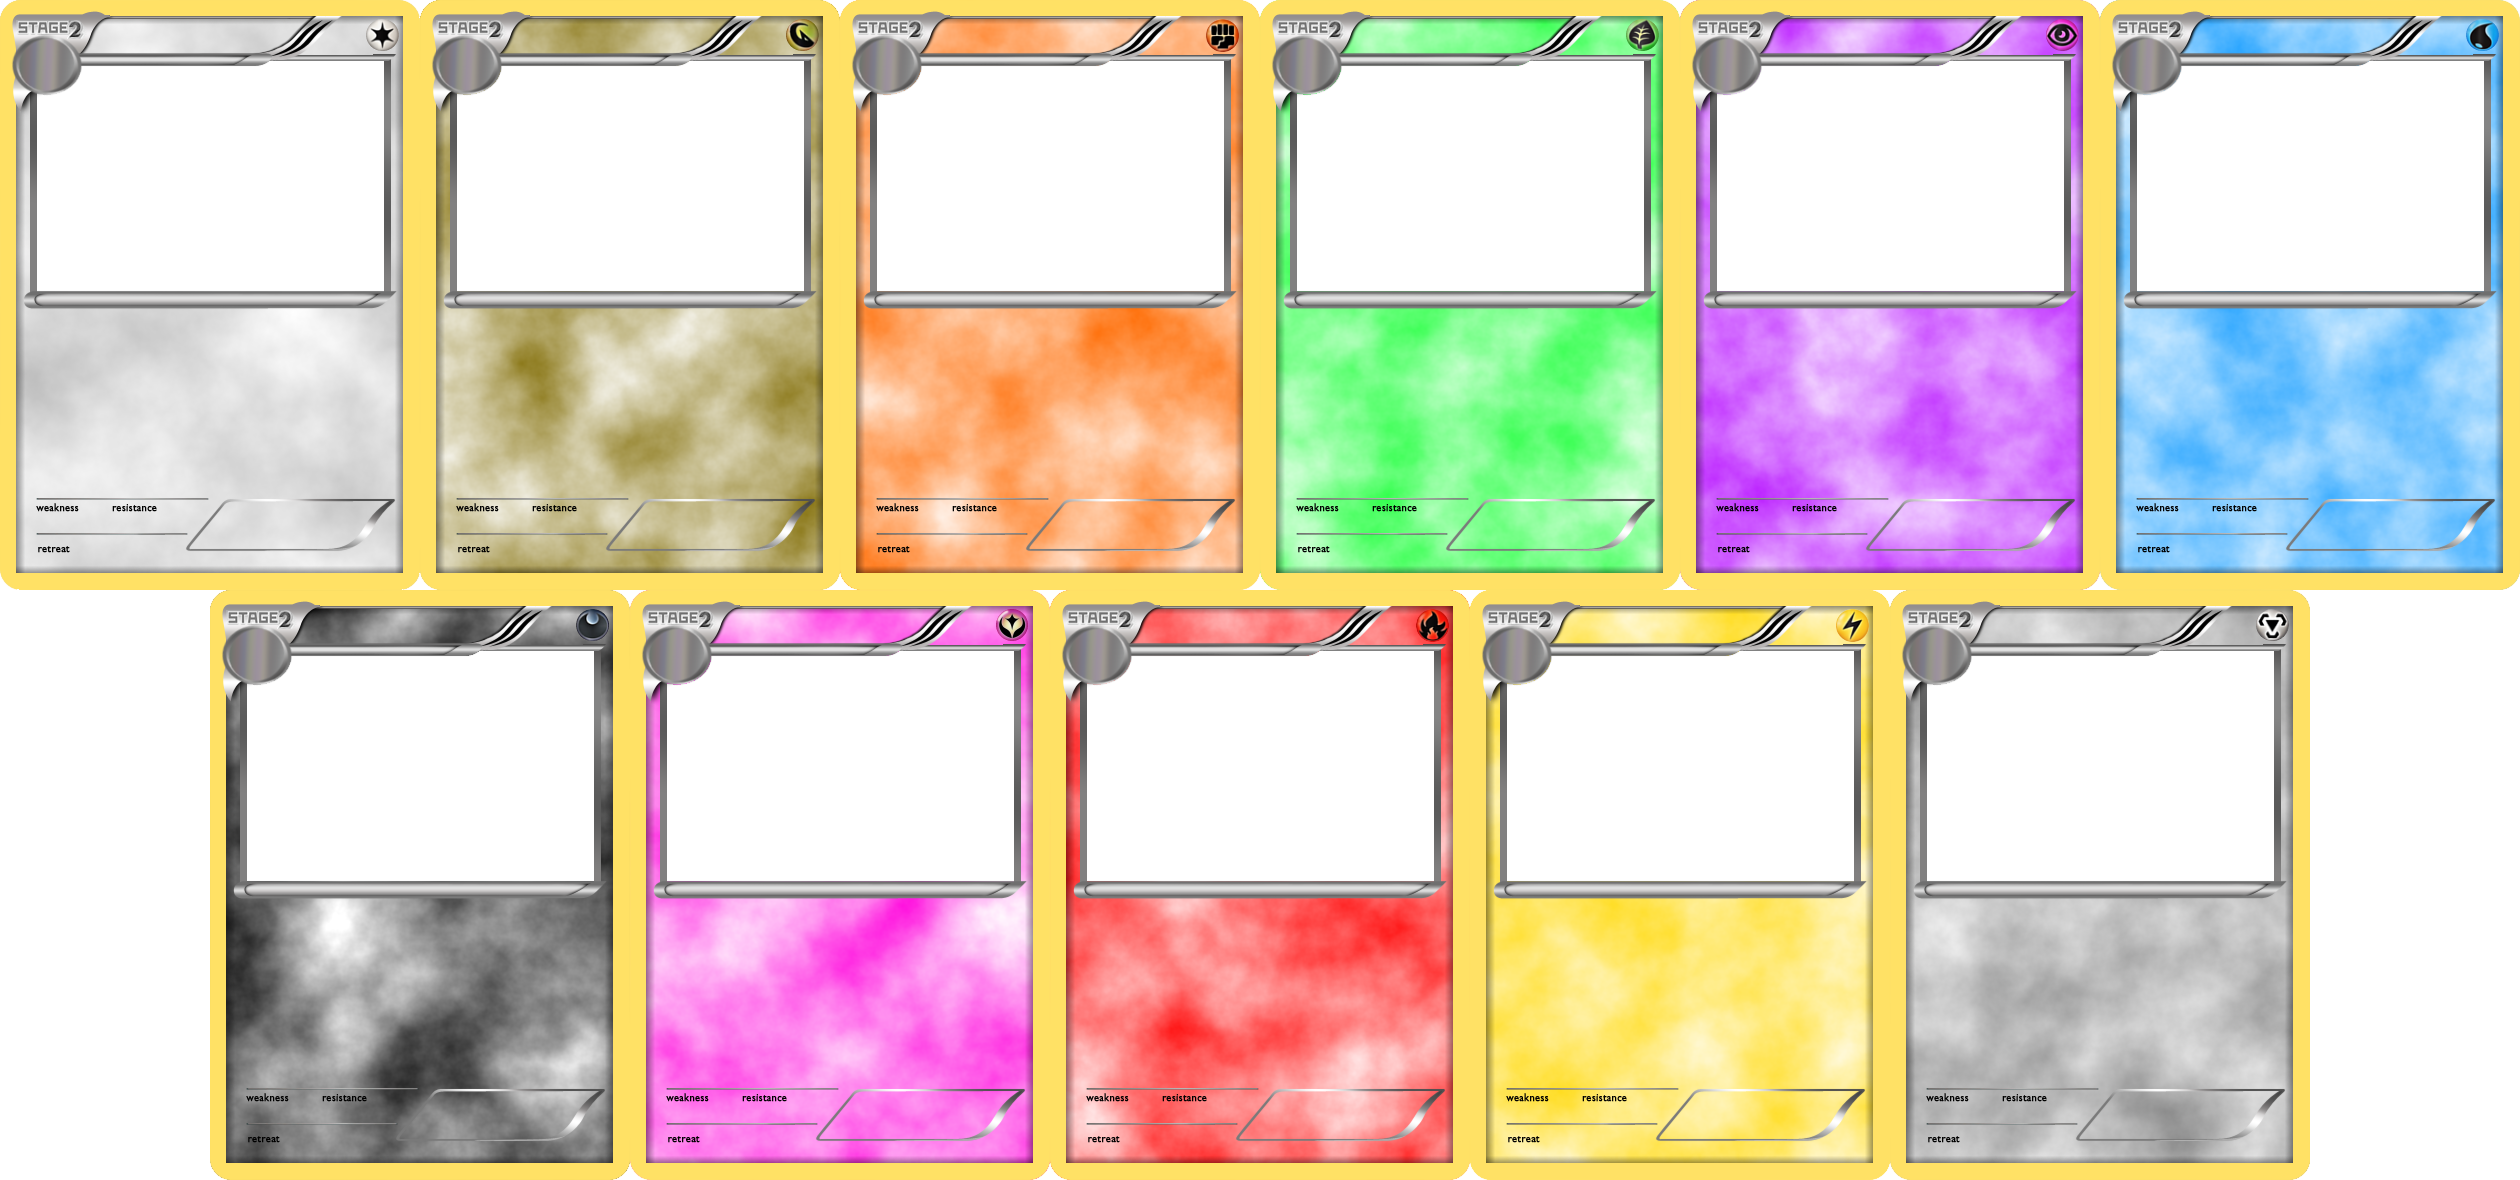 Pokemon Blank Card Templates Stage 2 By Levelinfinitum Pokemon Card Template Trading Card Template Blank Card Template